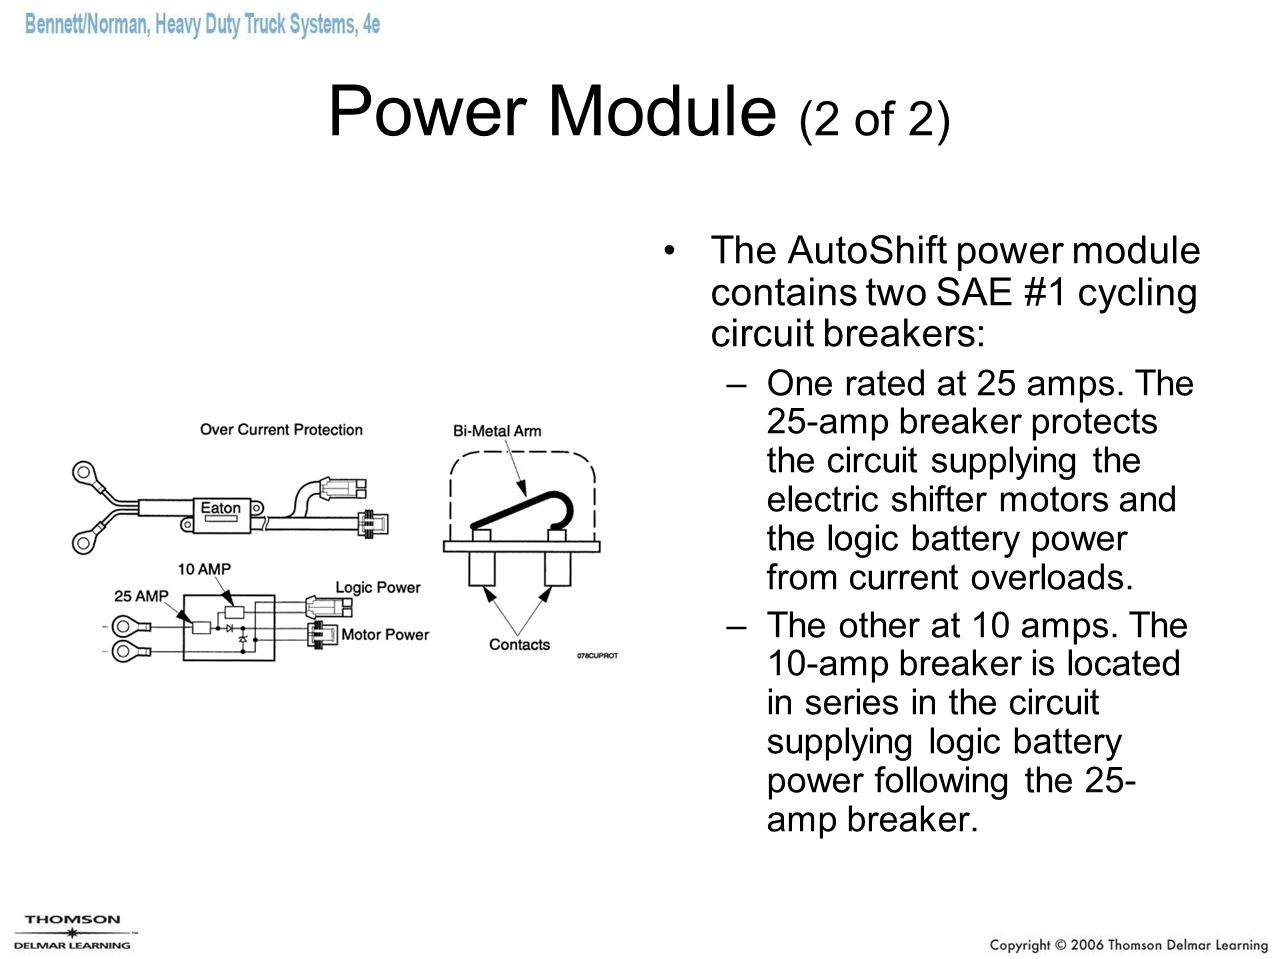 Power Module (2 of 2) The AutoShift power module contains two SAE #1 cycling circuit breakers: –One rated at 25 amps. The 25-amp breaker protects the